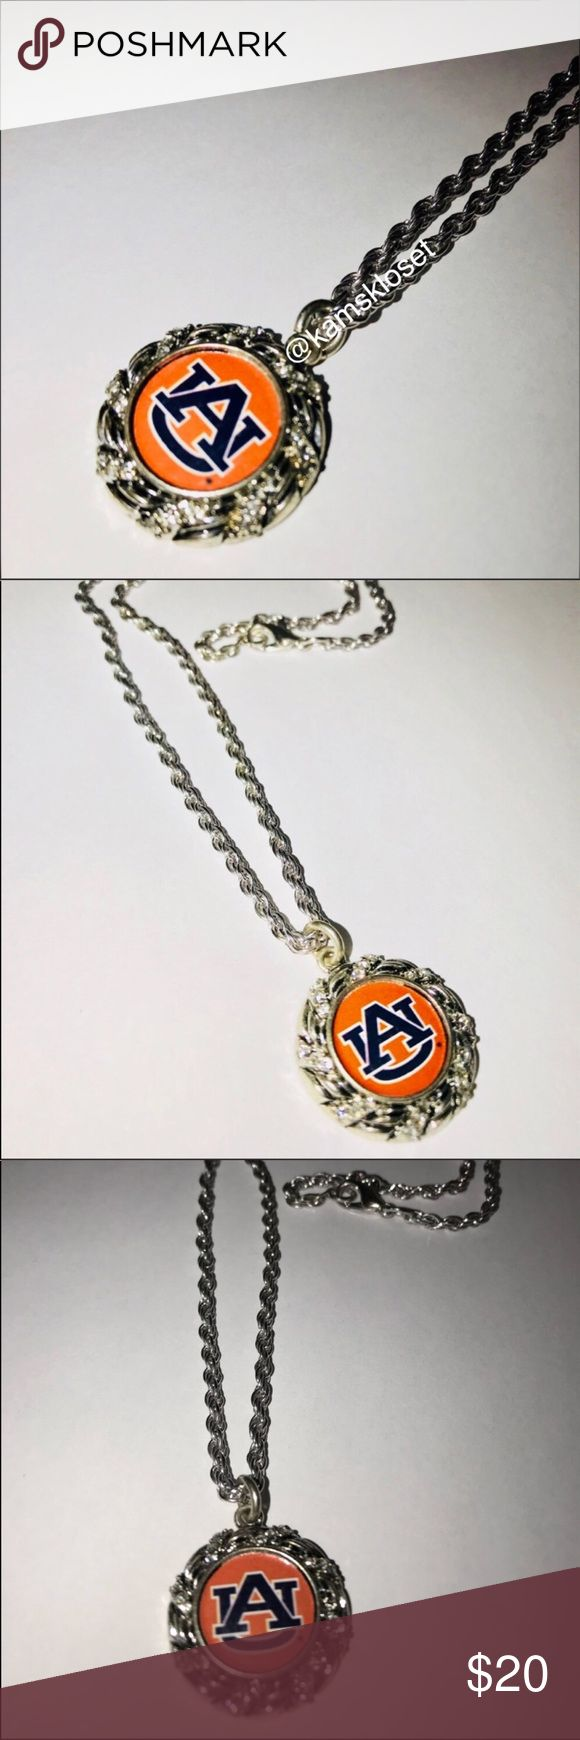 """Auburn University Silver Oval Logo Necklace This beautiful """"Au"""" logo necklace is perfect to wear on game days or to gift for that dedicated fan! Oval Pendant has blue and orange """"AU"""" logo with """"crystal"""" accents around oval. Silver chain measures 18.5"""" long with lobster claw closure! Bundle and Save! Jewelry Necklaces"""